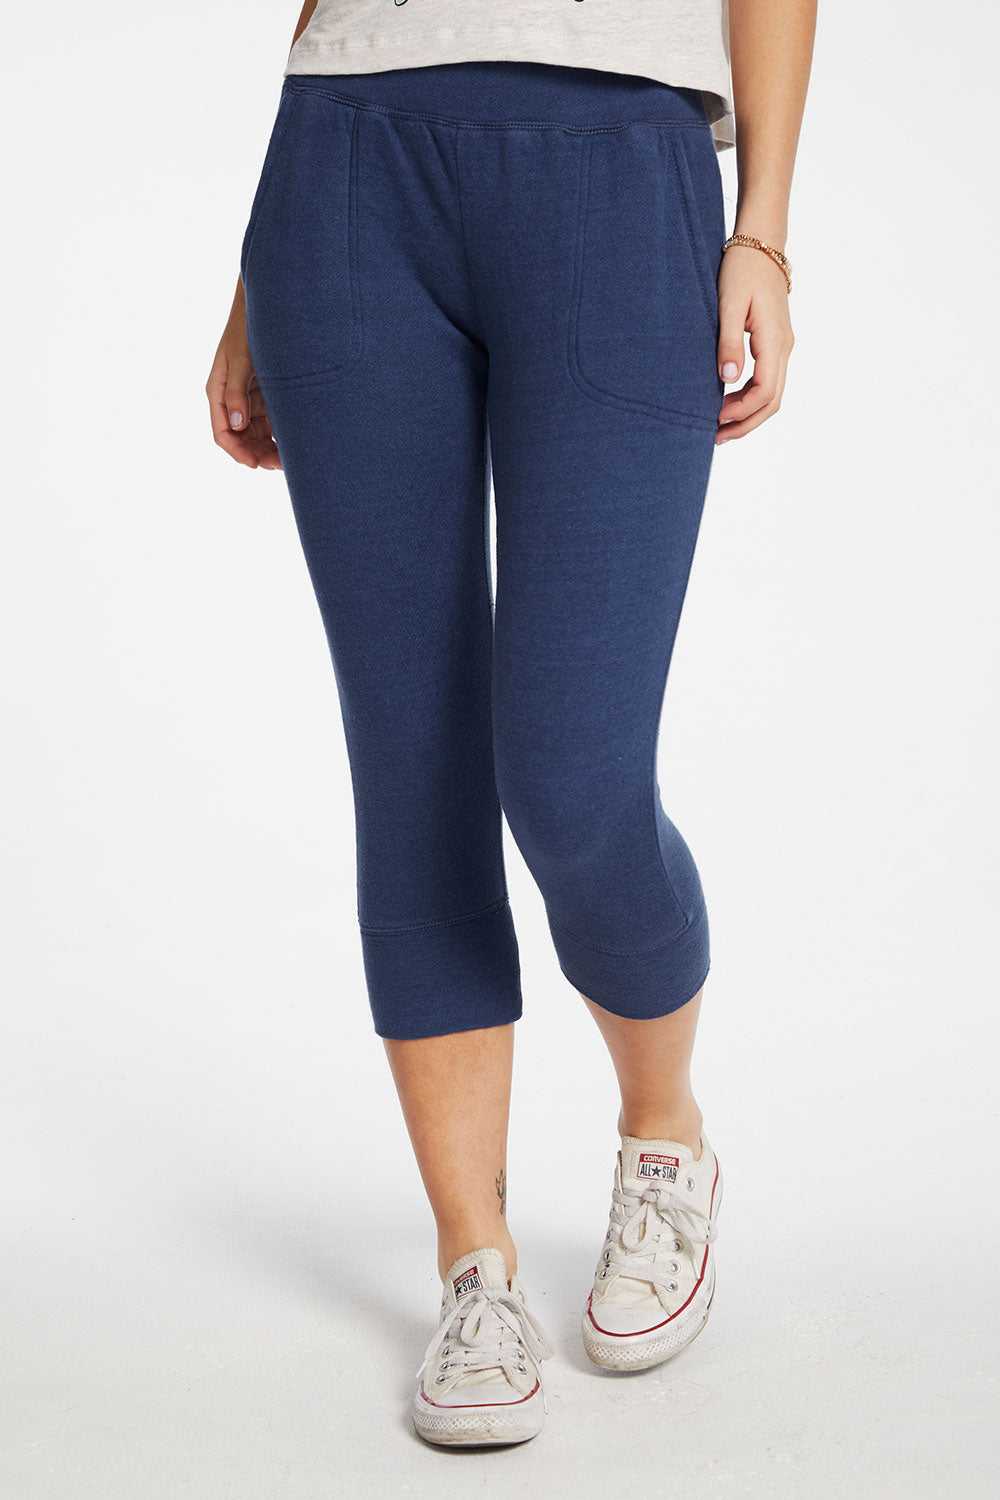 Linen French Terry Cropped Extended Cuff Lounge Pant